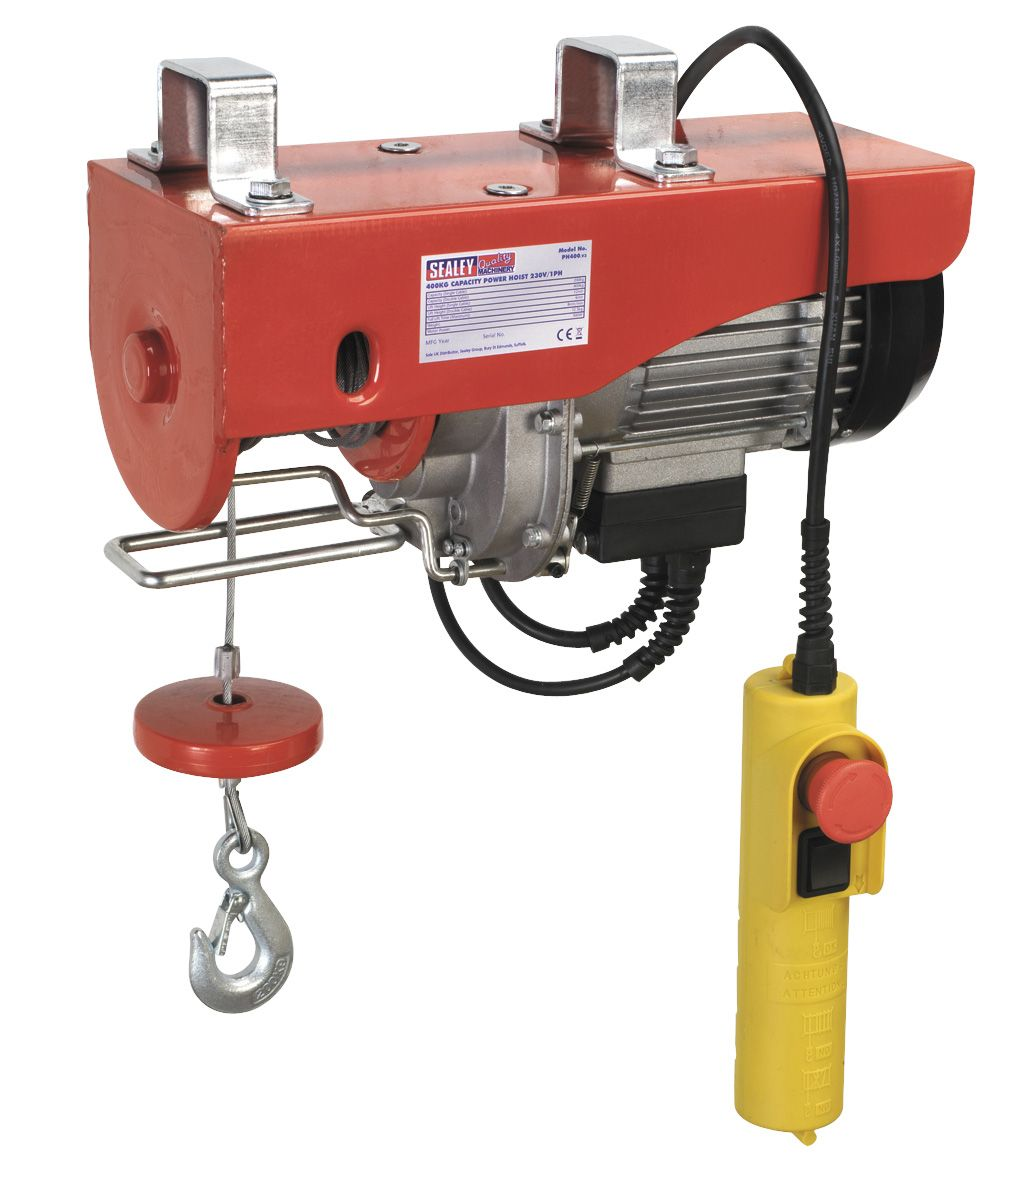 Sealey Power Hoist 230V/1ph 400kg Capacity